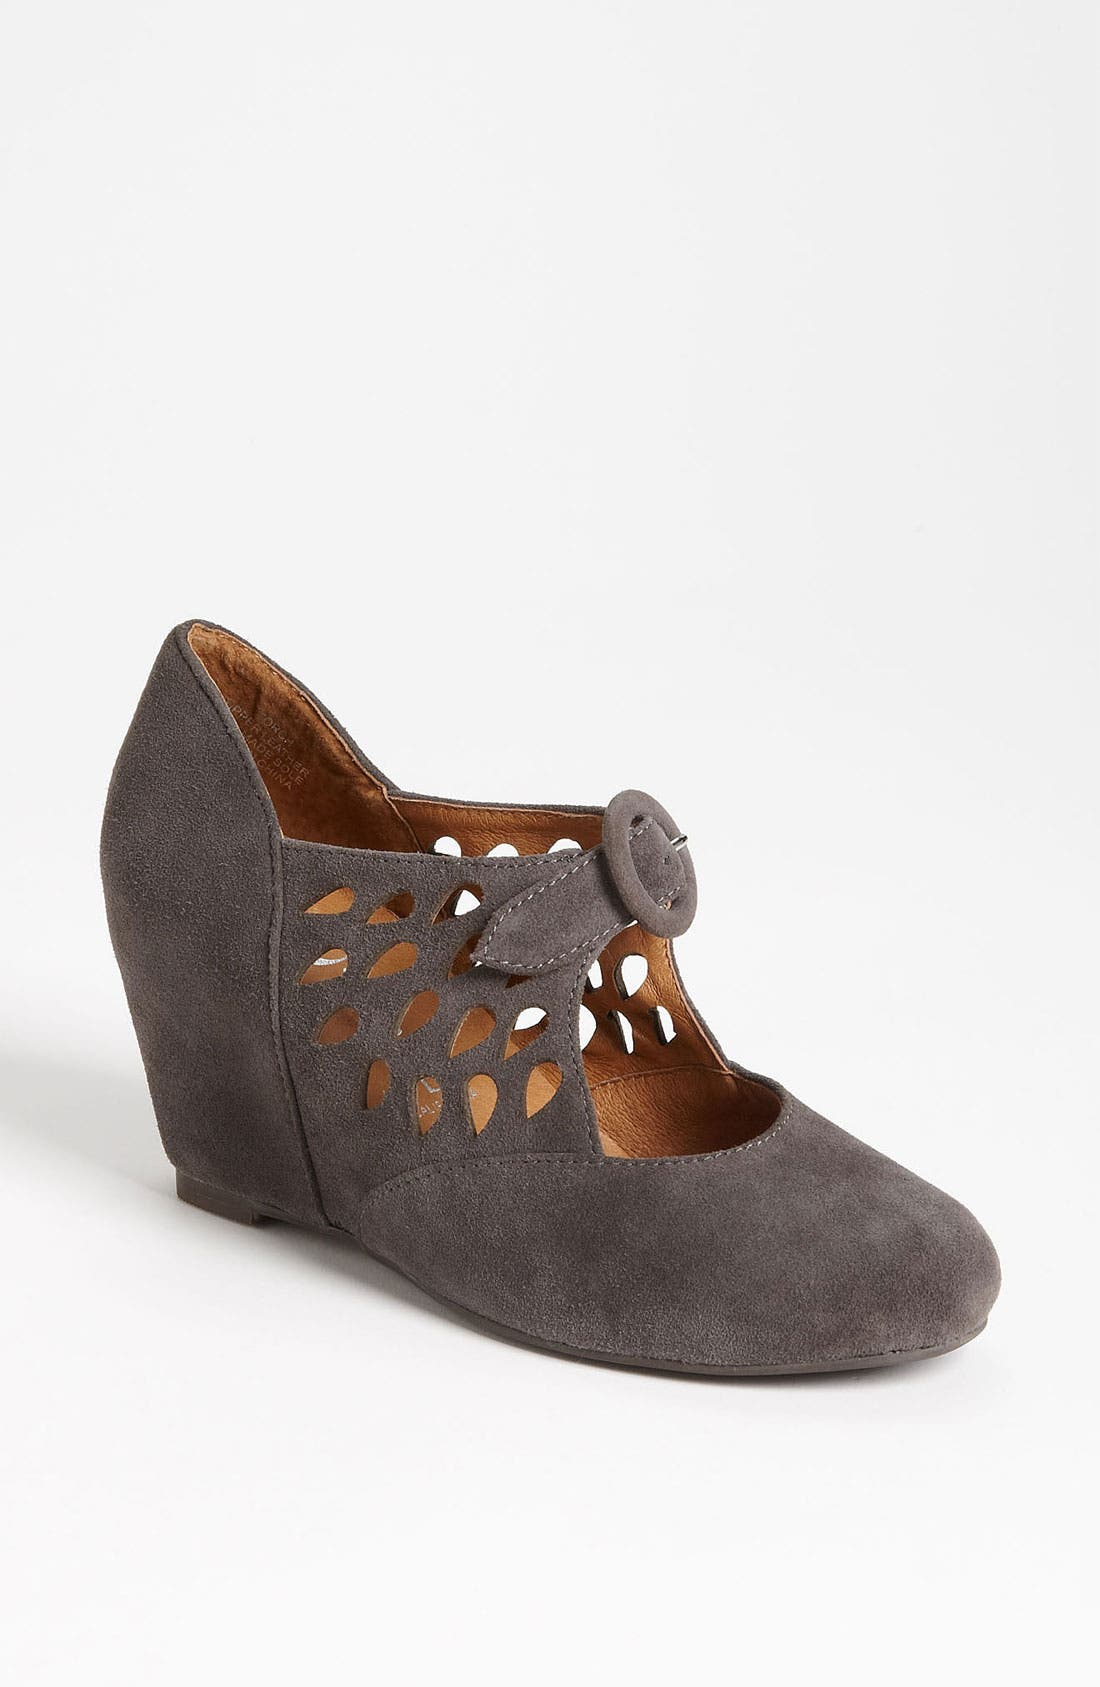 Alternate Image 1 Selected - Jeffrey Campbell 'Torch' Mary Jane Wedge